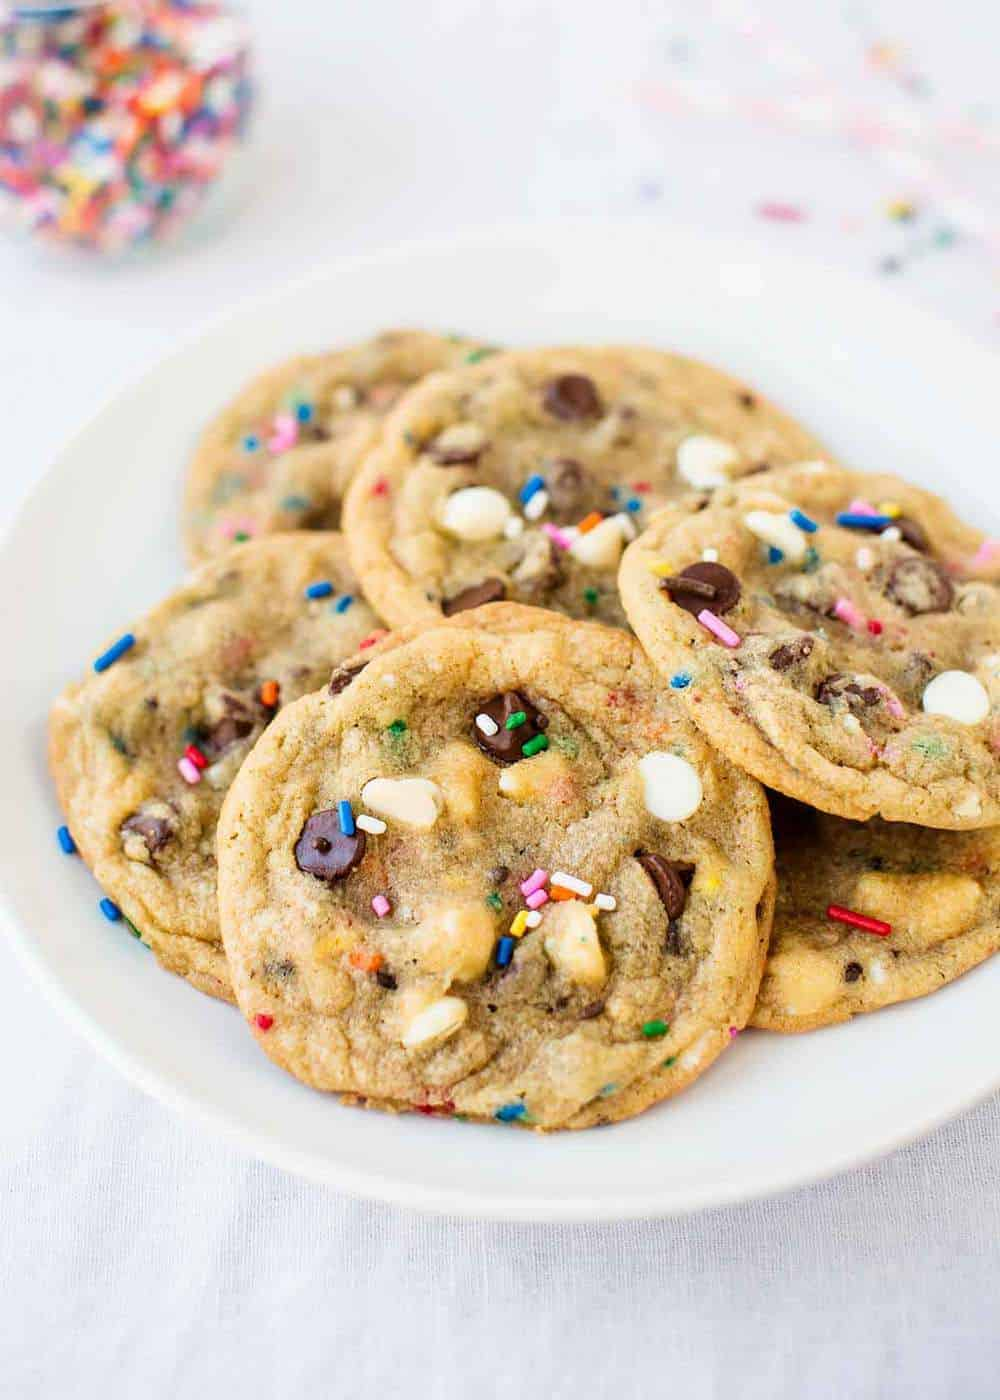 plate full of chocolate chip cookies with sprinkles